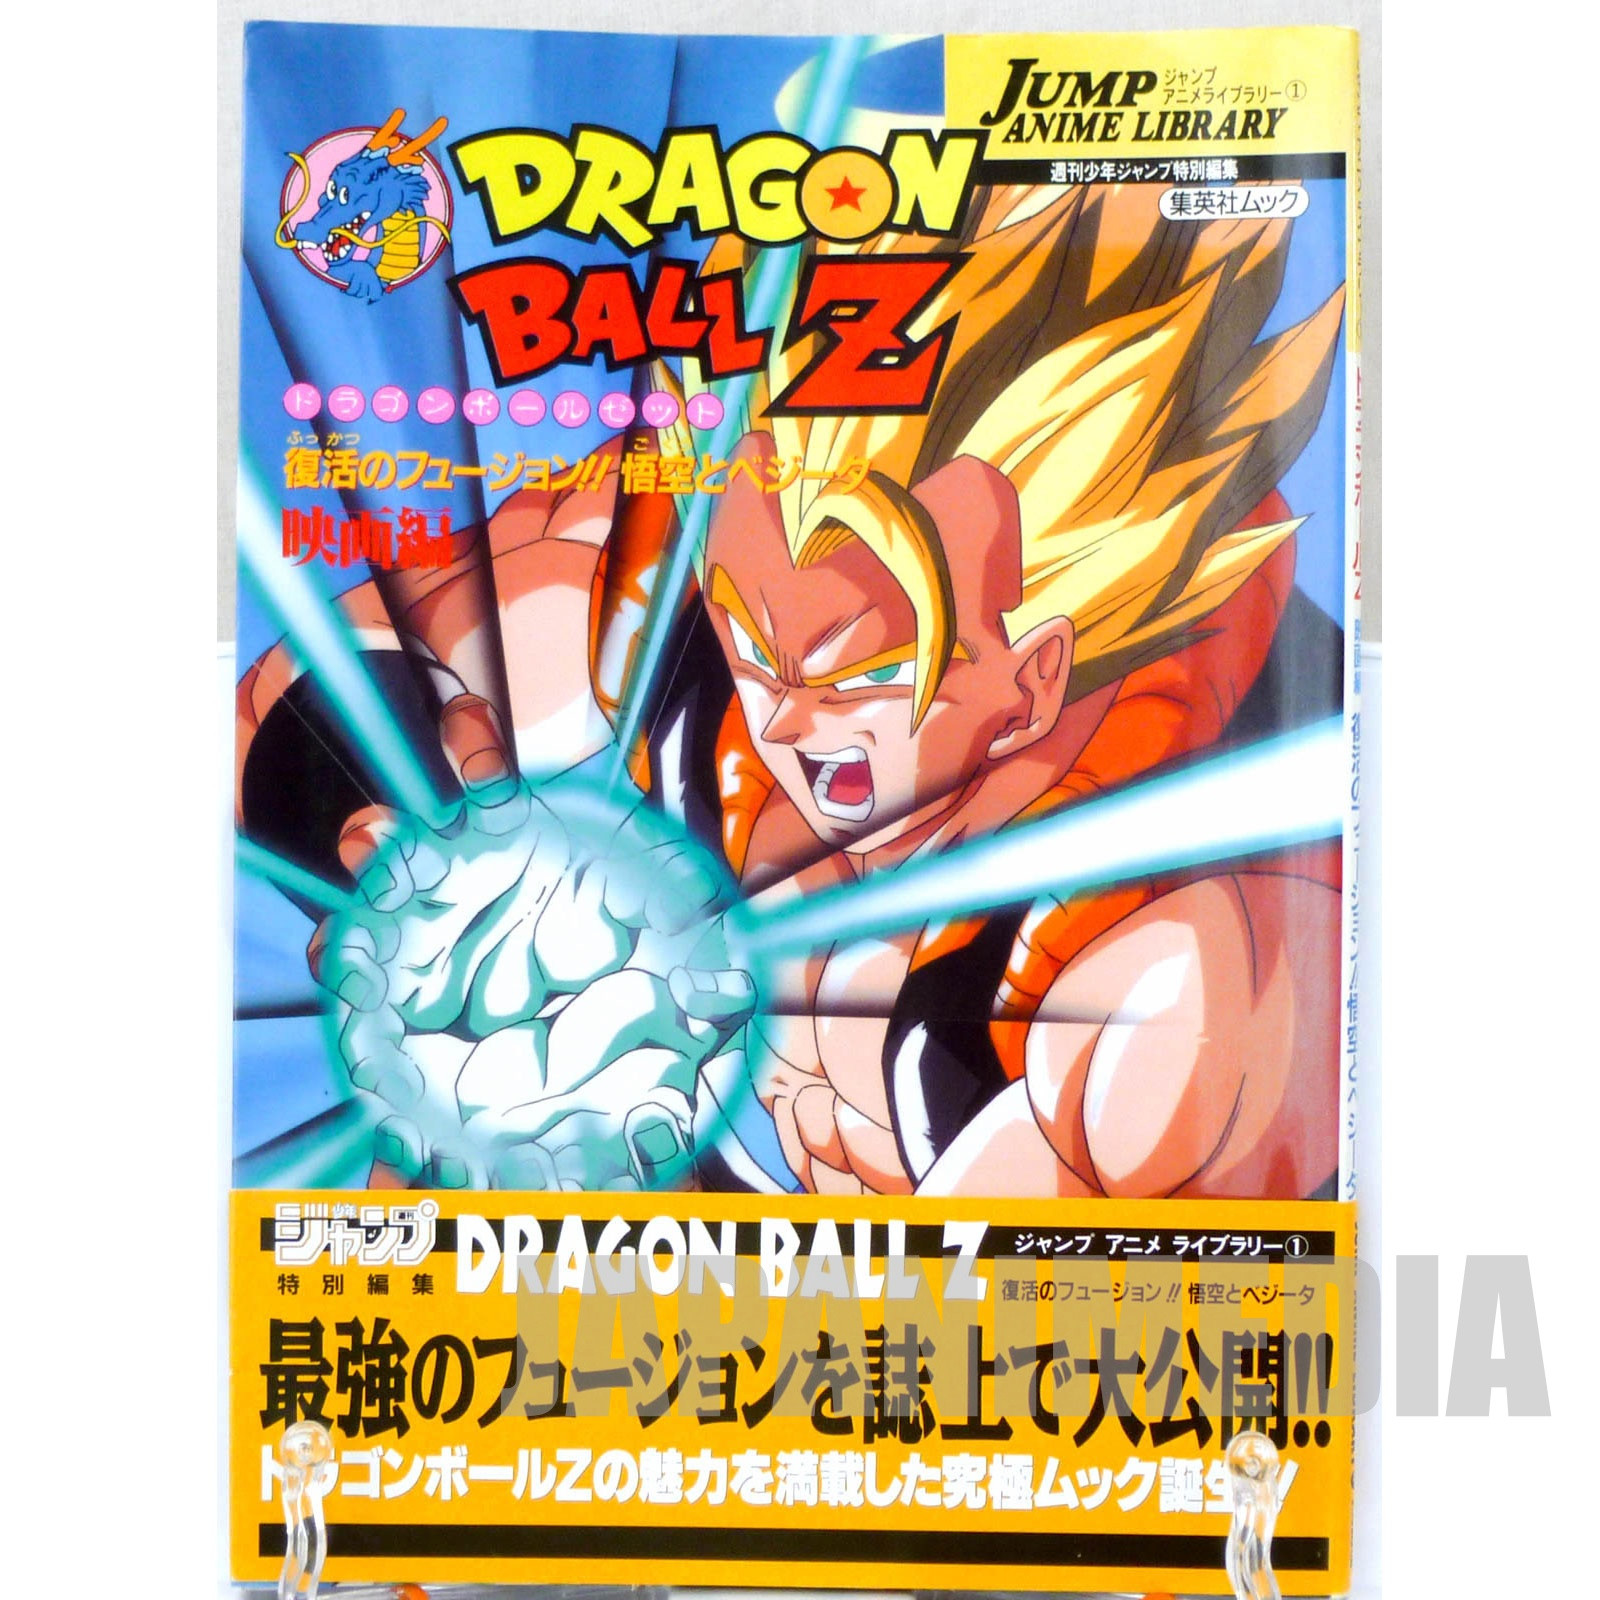 Dragon Ball Z Fusion Reborn Jump anime liblary Art Book JAPAN ANIME MOVIE